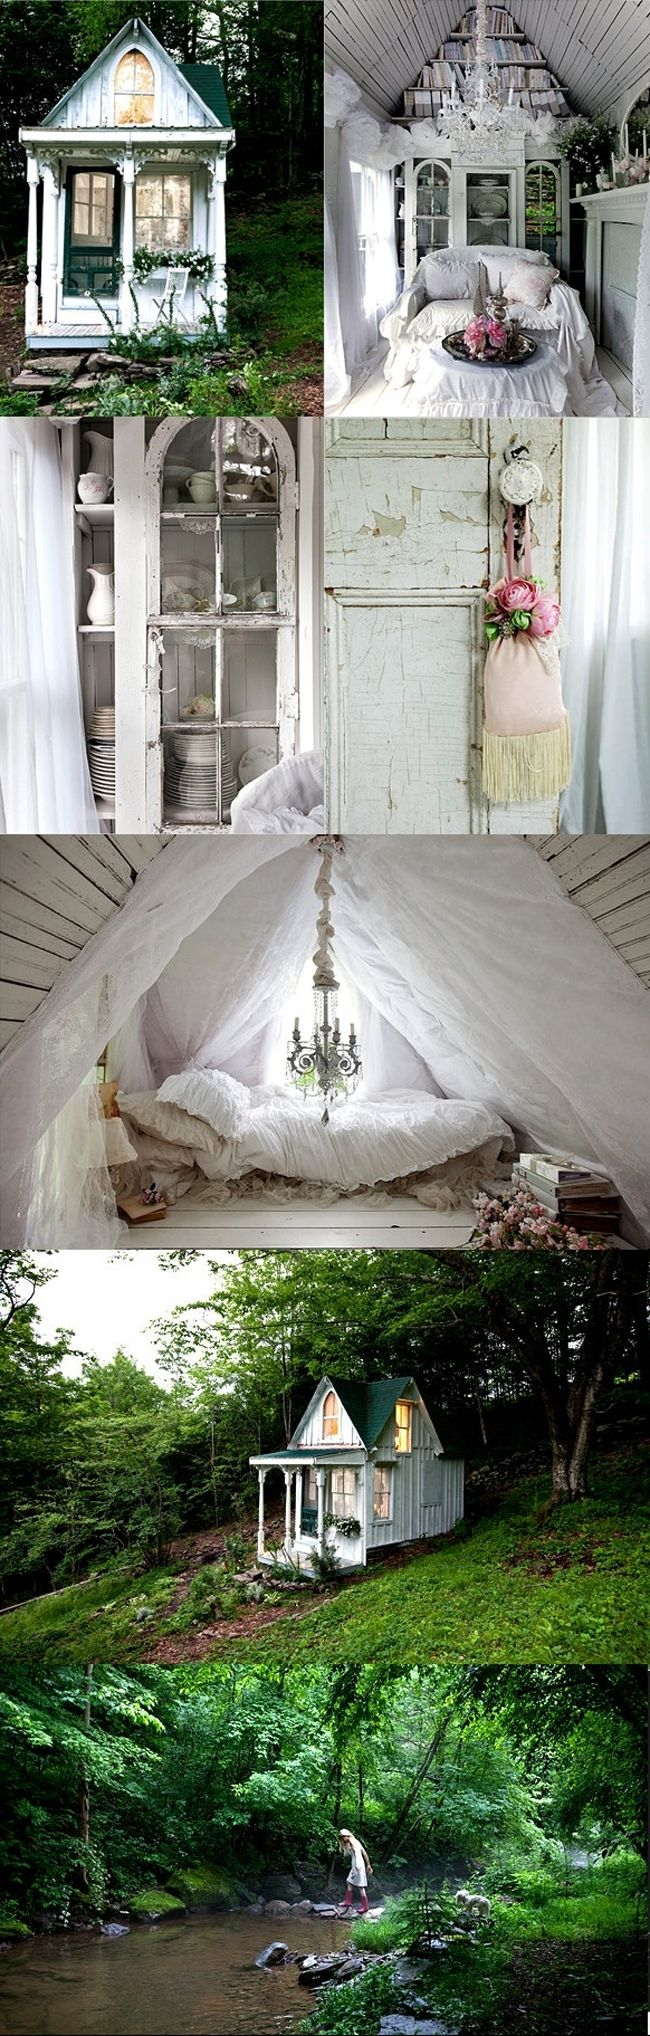 i love this. Wish I could have this house!! its perfect